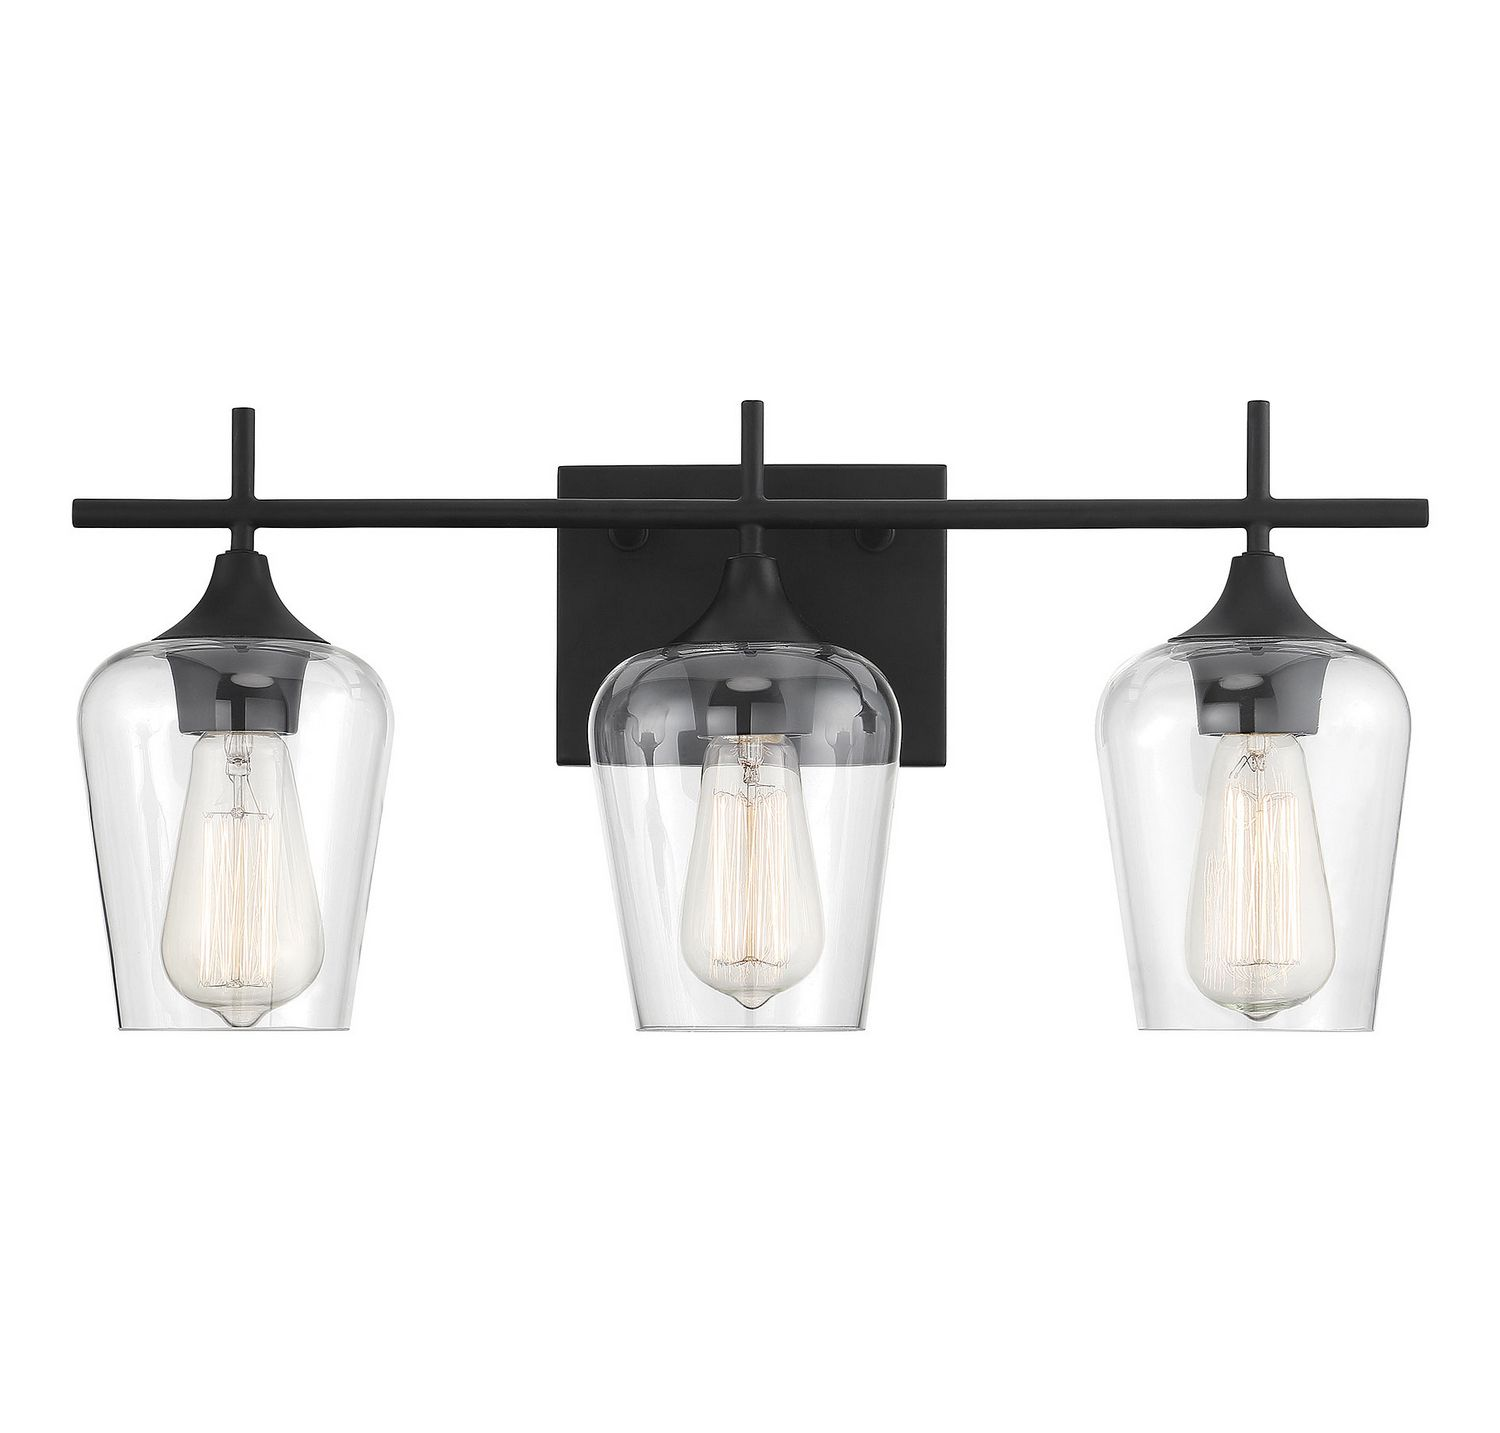 This sleek black vanity fixture is a great addition to a ...